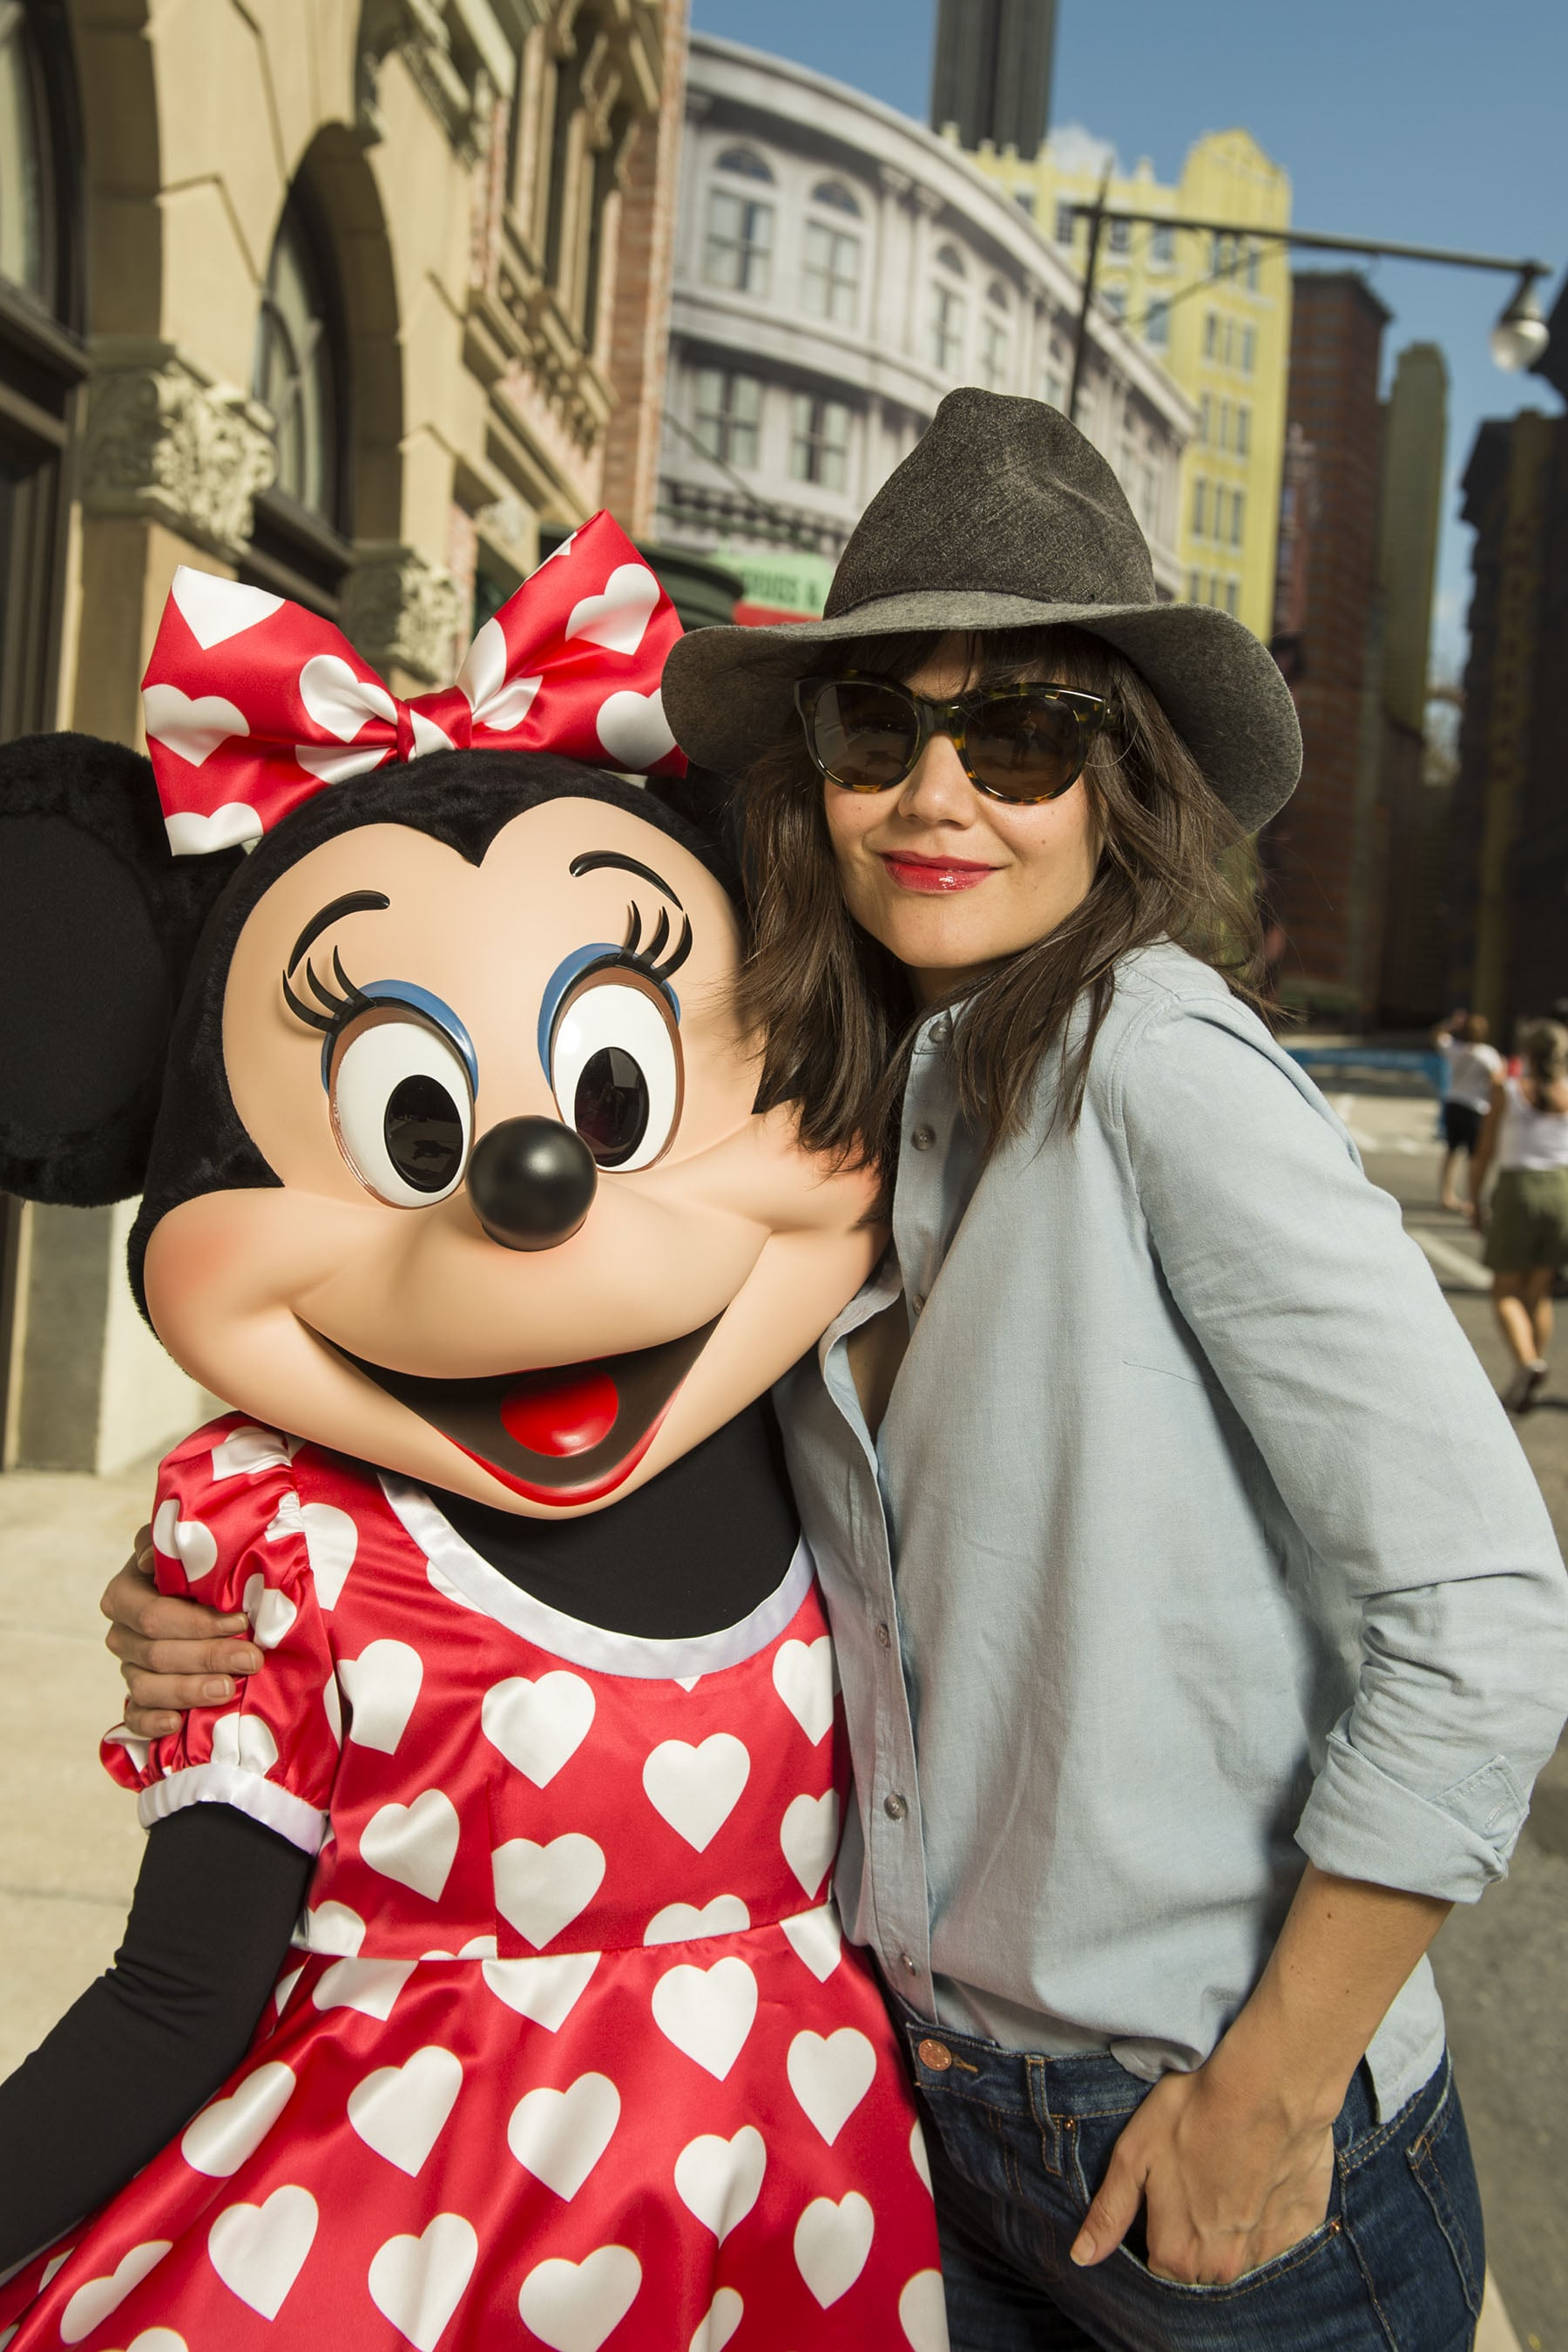 Minnie Mouse looked super psyched to see Katie Holmes at Walt Disney World in March 2014.